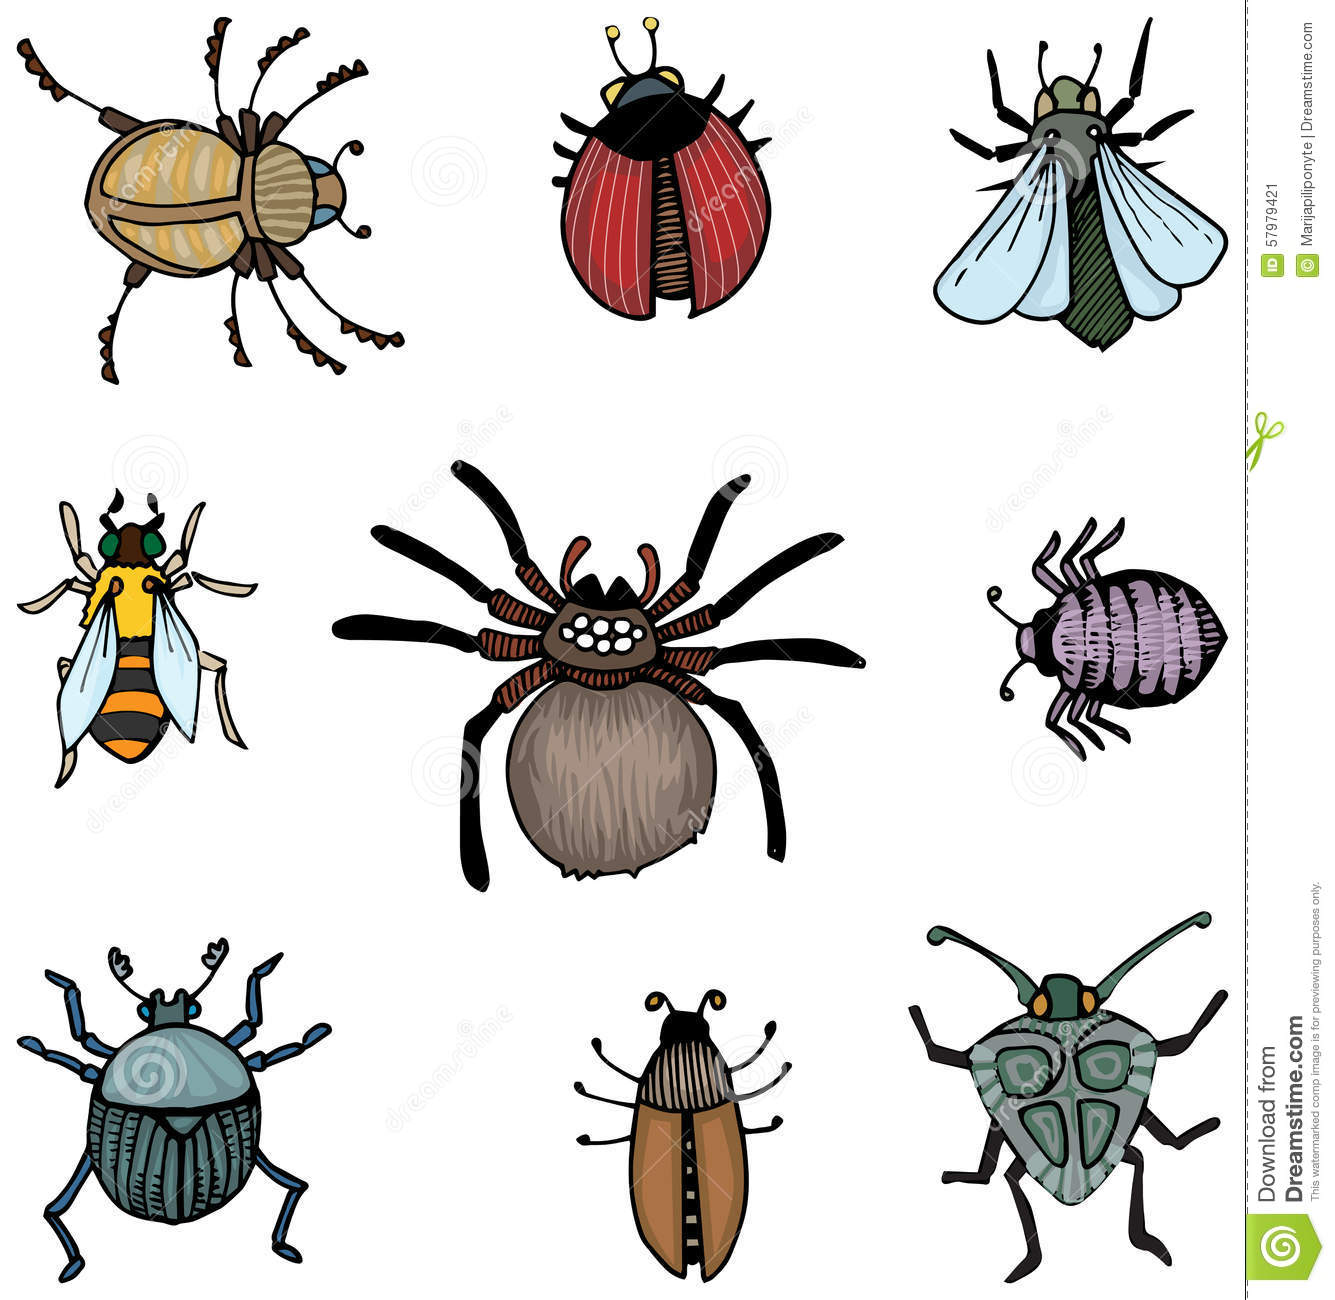 Bugs And Insects Stock Vector - Image: 57979421